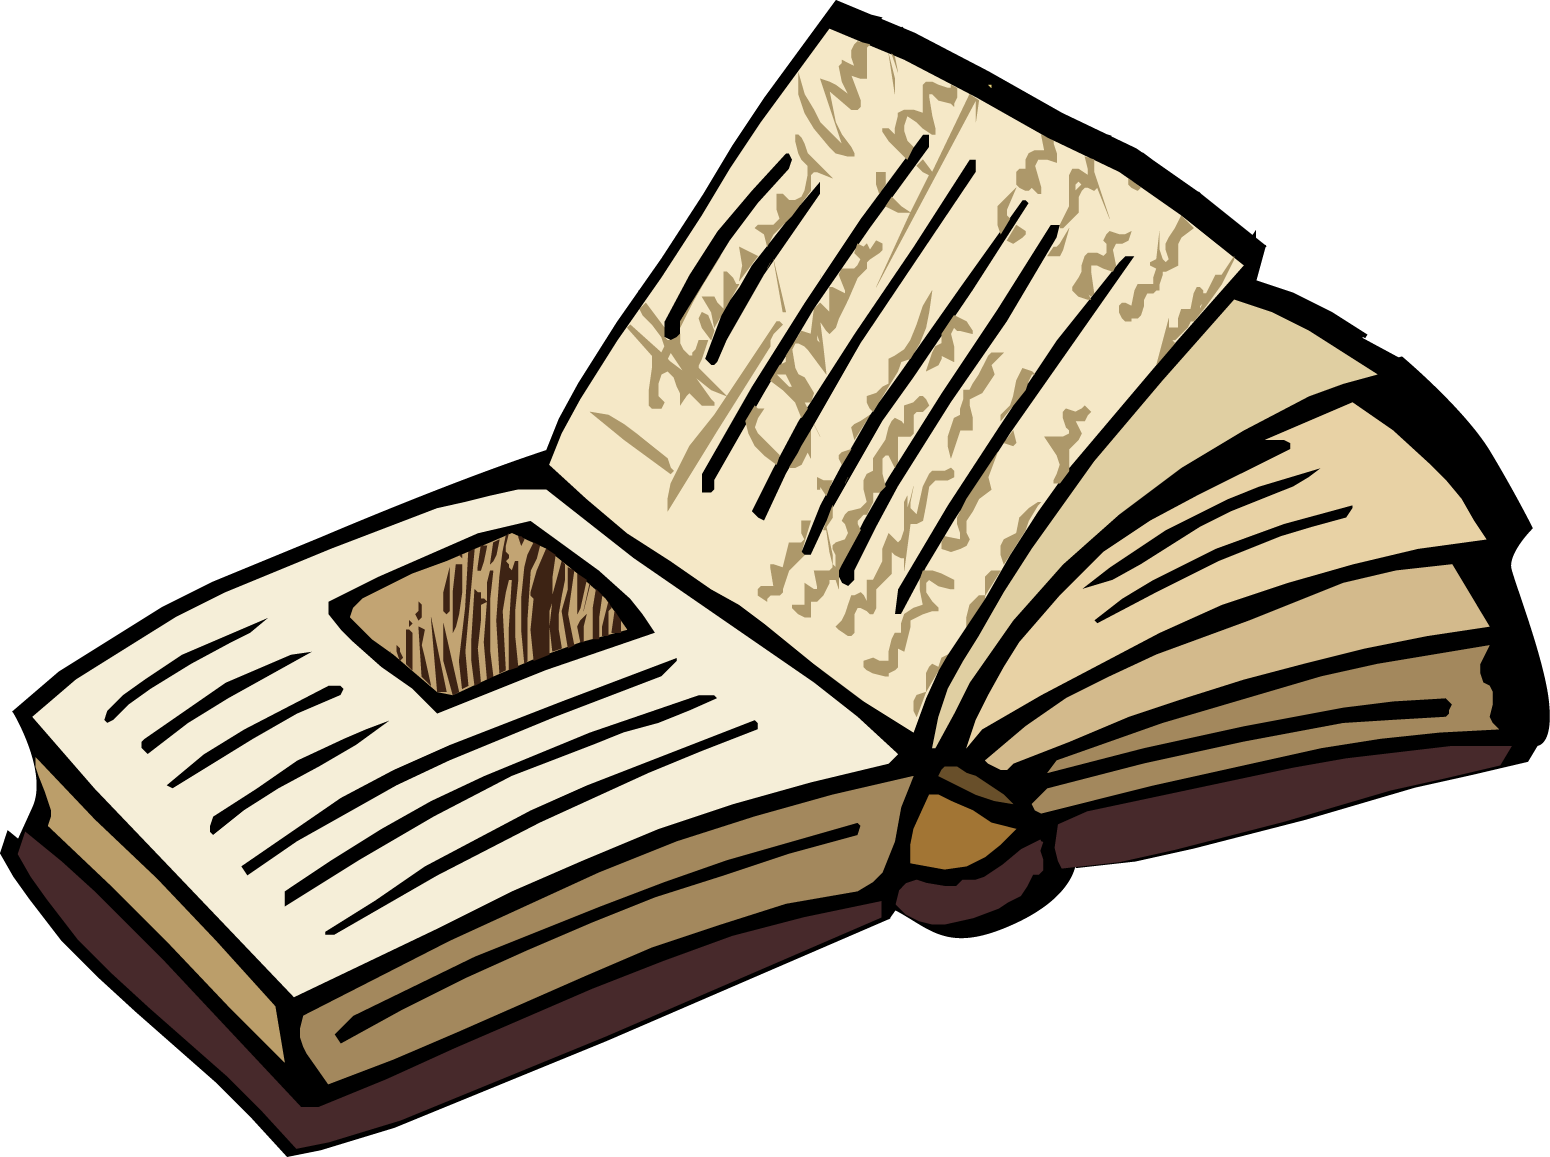 books clipart old